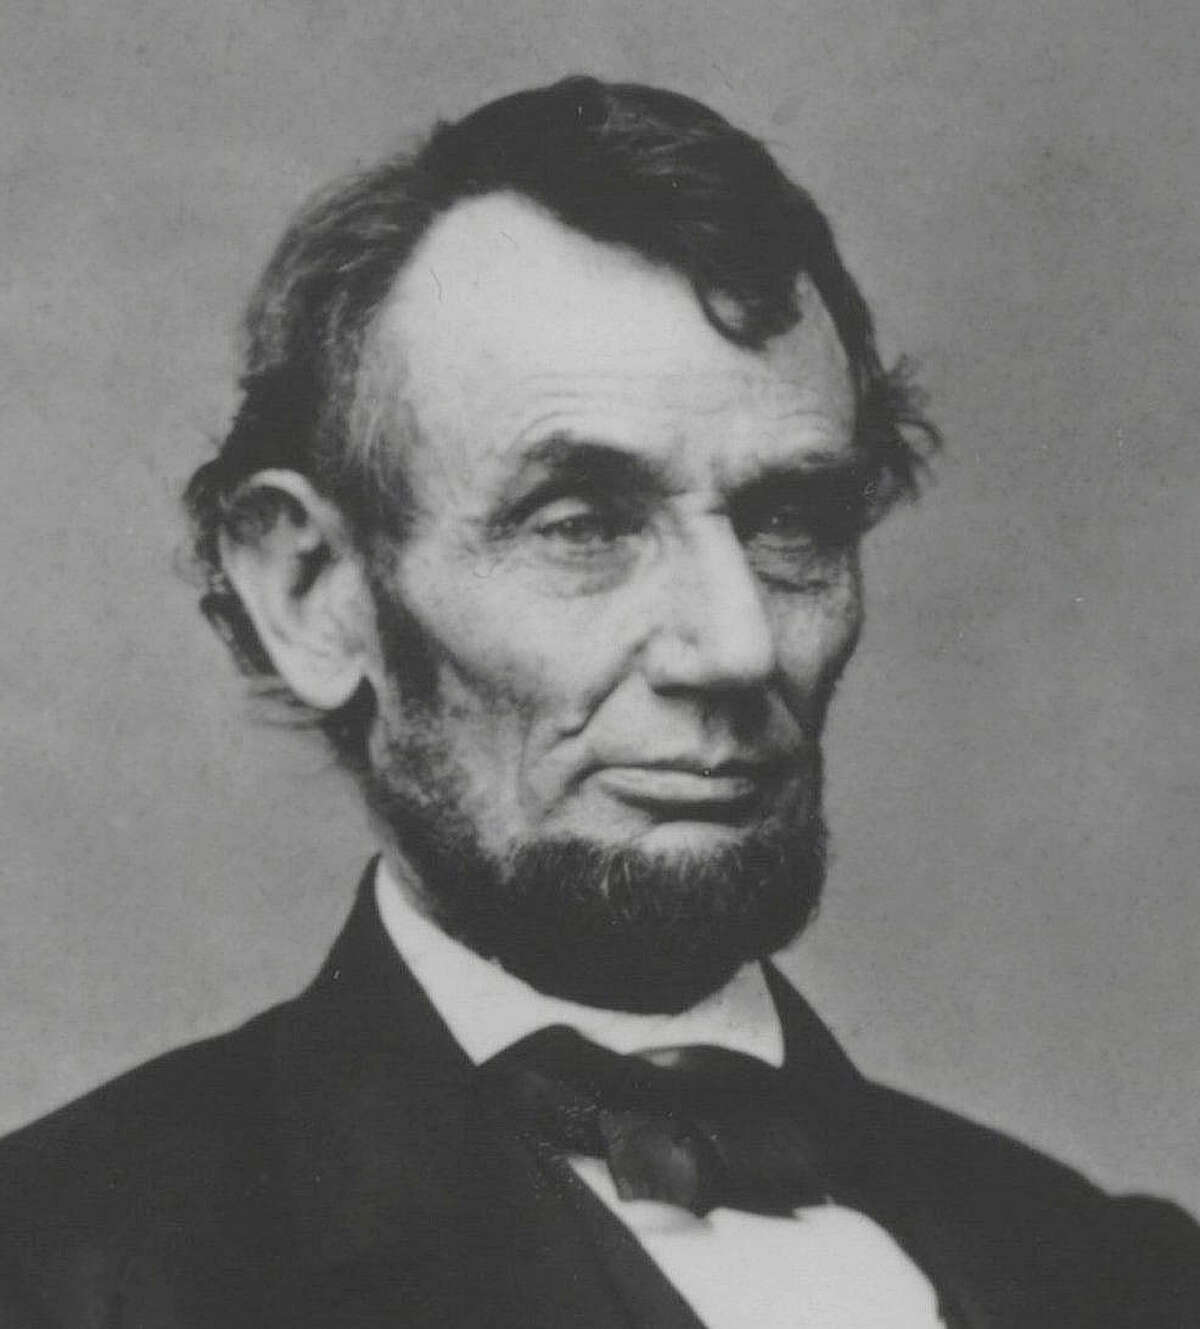 FILE. Letter writer looks to words of Lincoln for guidance today. (Times Union historic images)